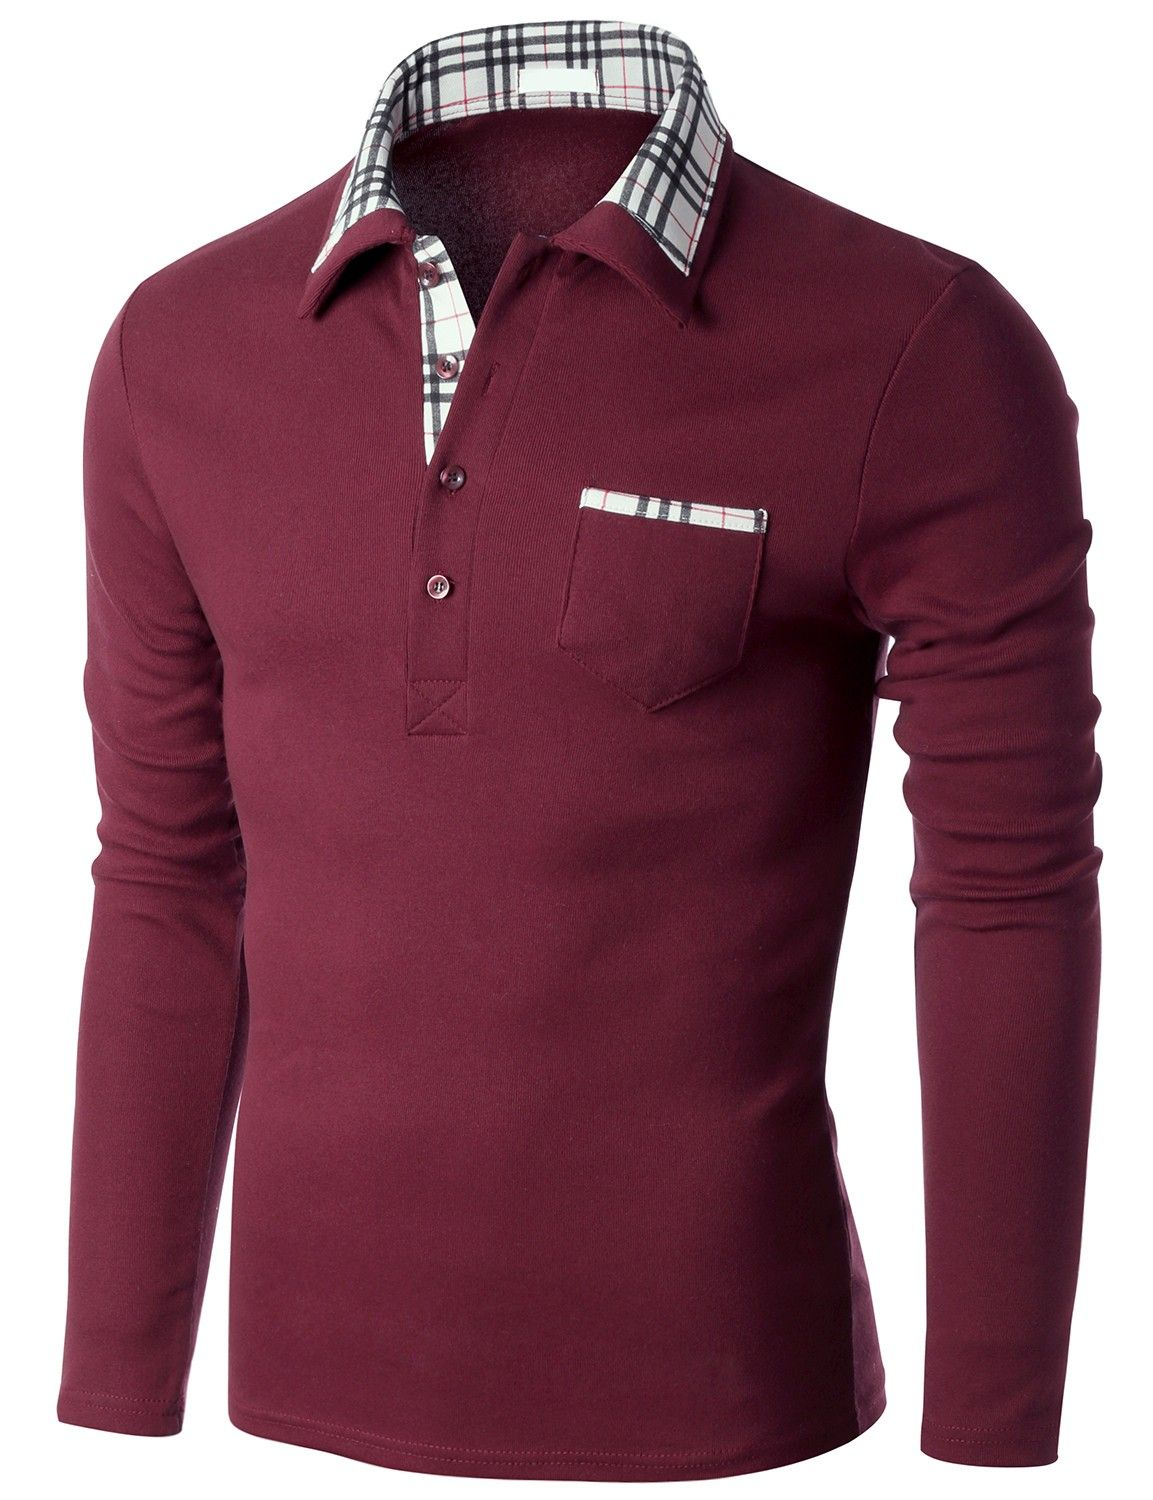 255e23eed6a5 Mens Long Sleeve Polo Shirts At Jcpenney